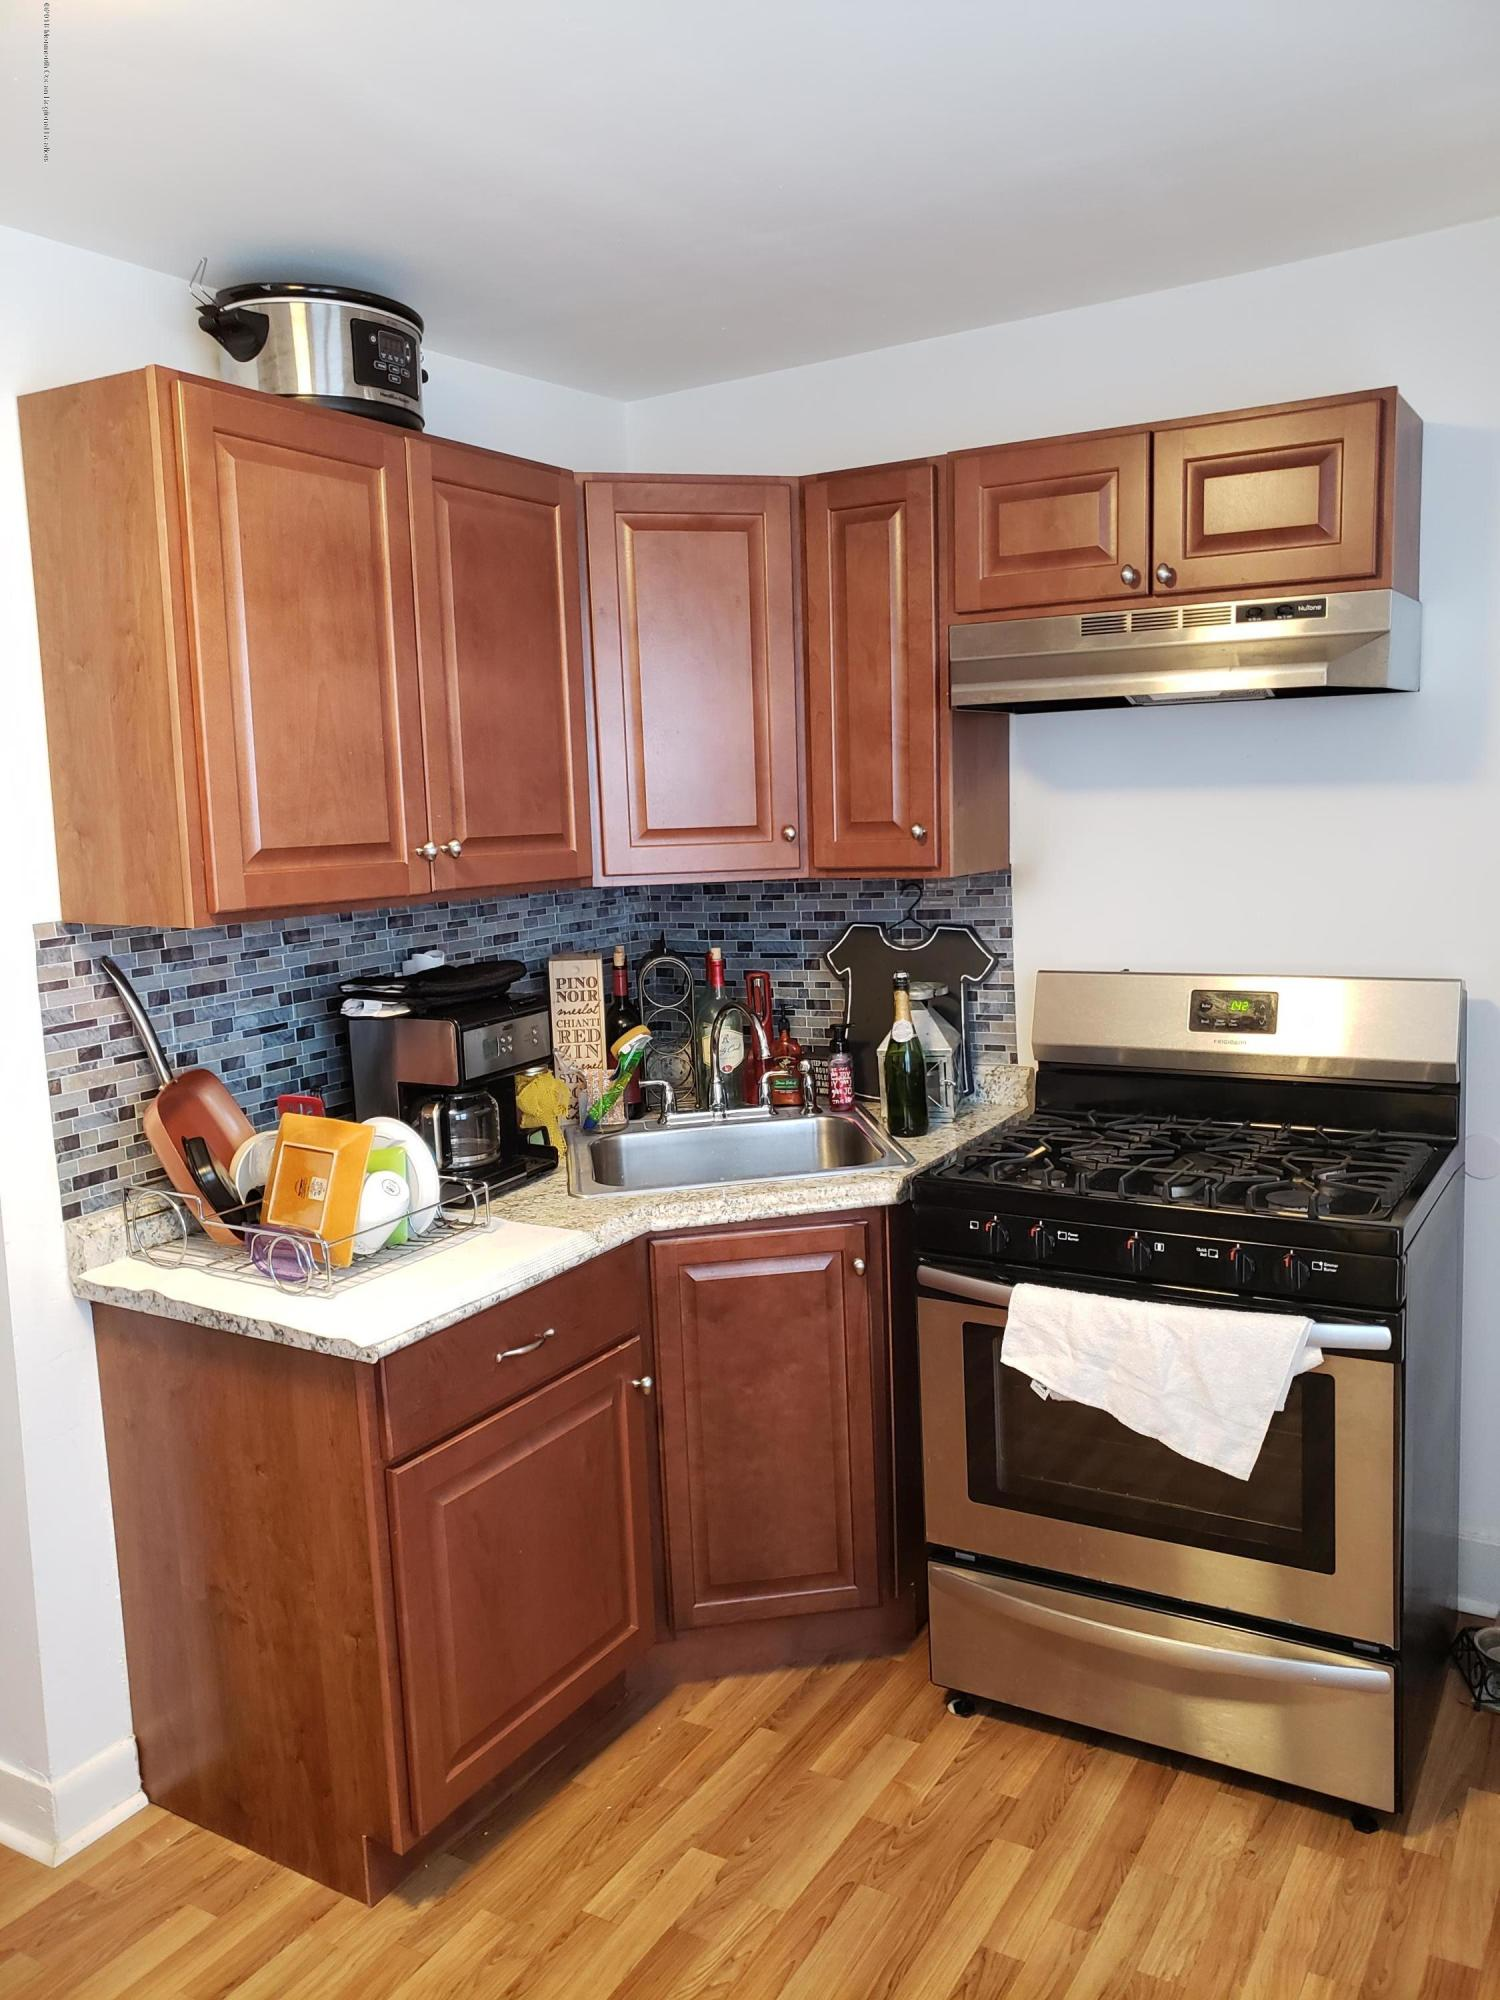 Affordable two bedroom apartment near Asbury downtown and train station. Nice bright apartment with, new kitchen, hardwood floors, shared backyard and front porch. Good credit required. NO PETS.